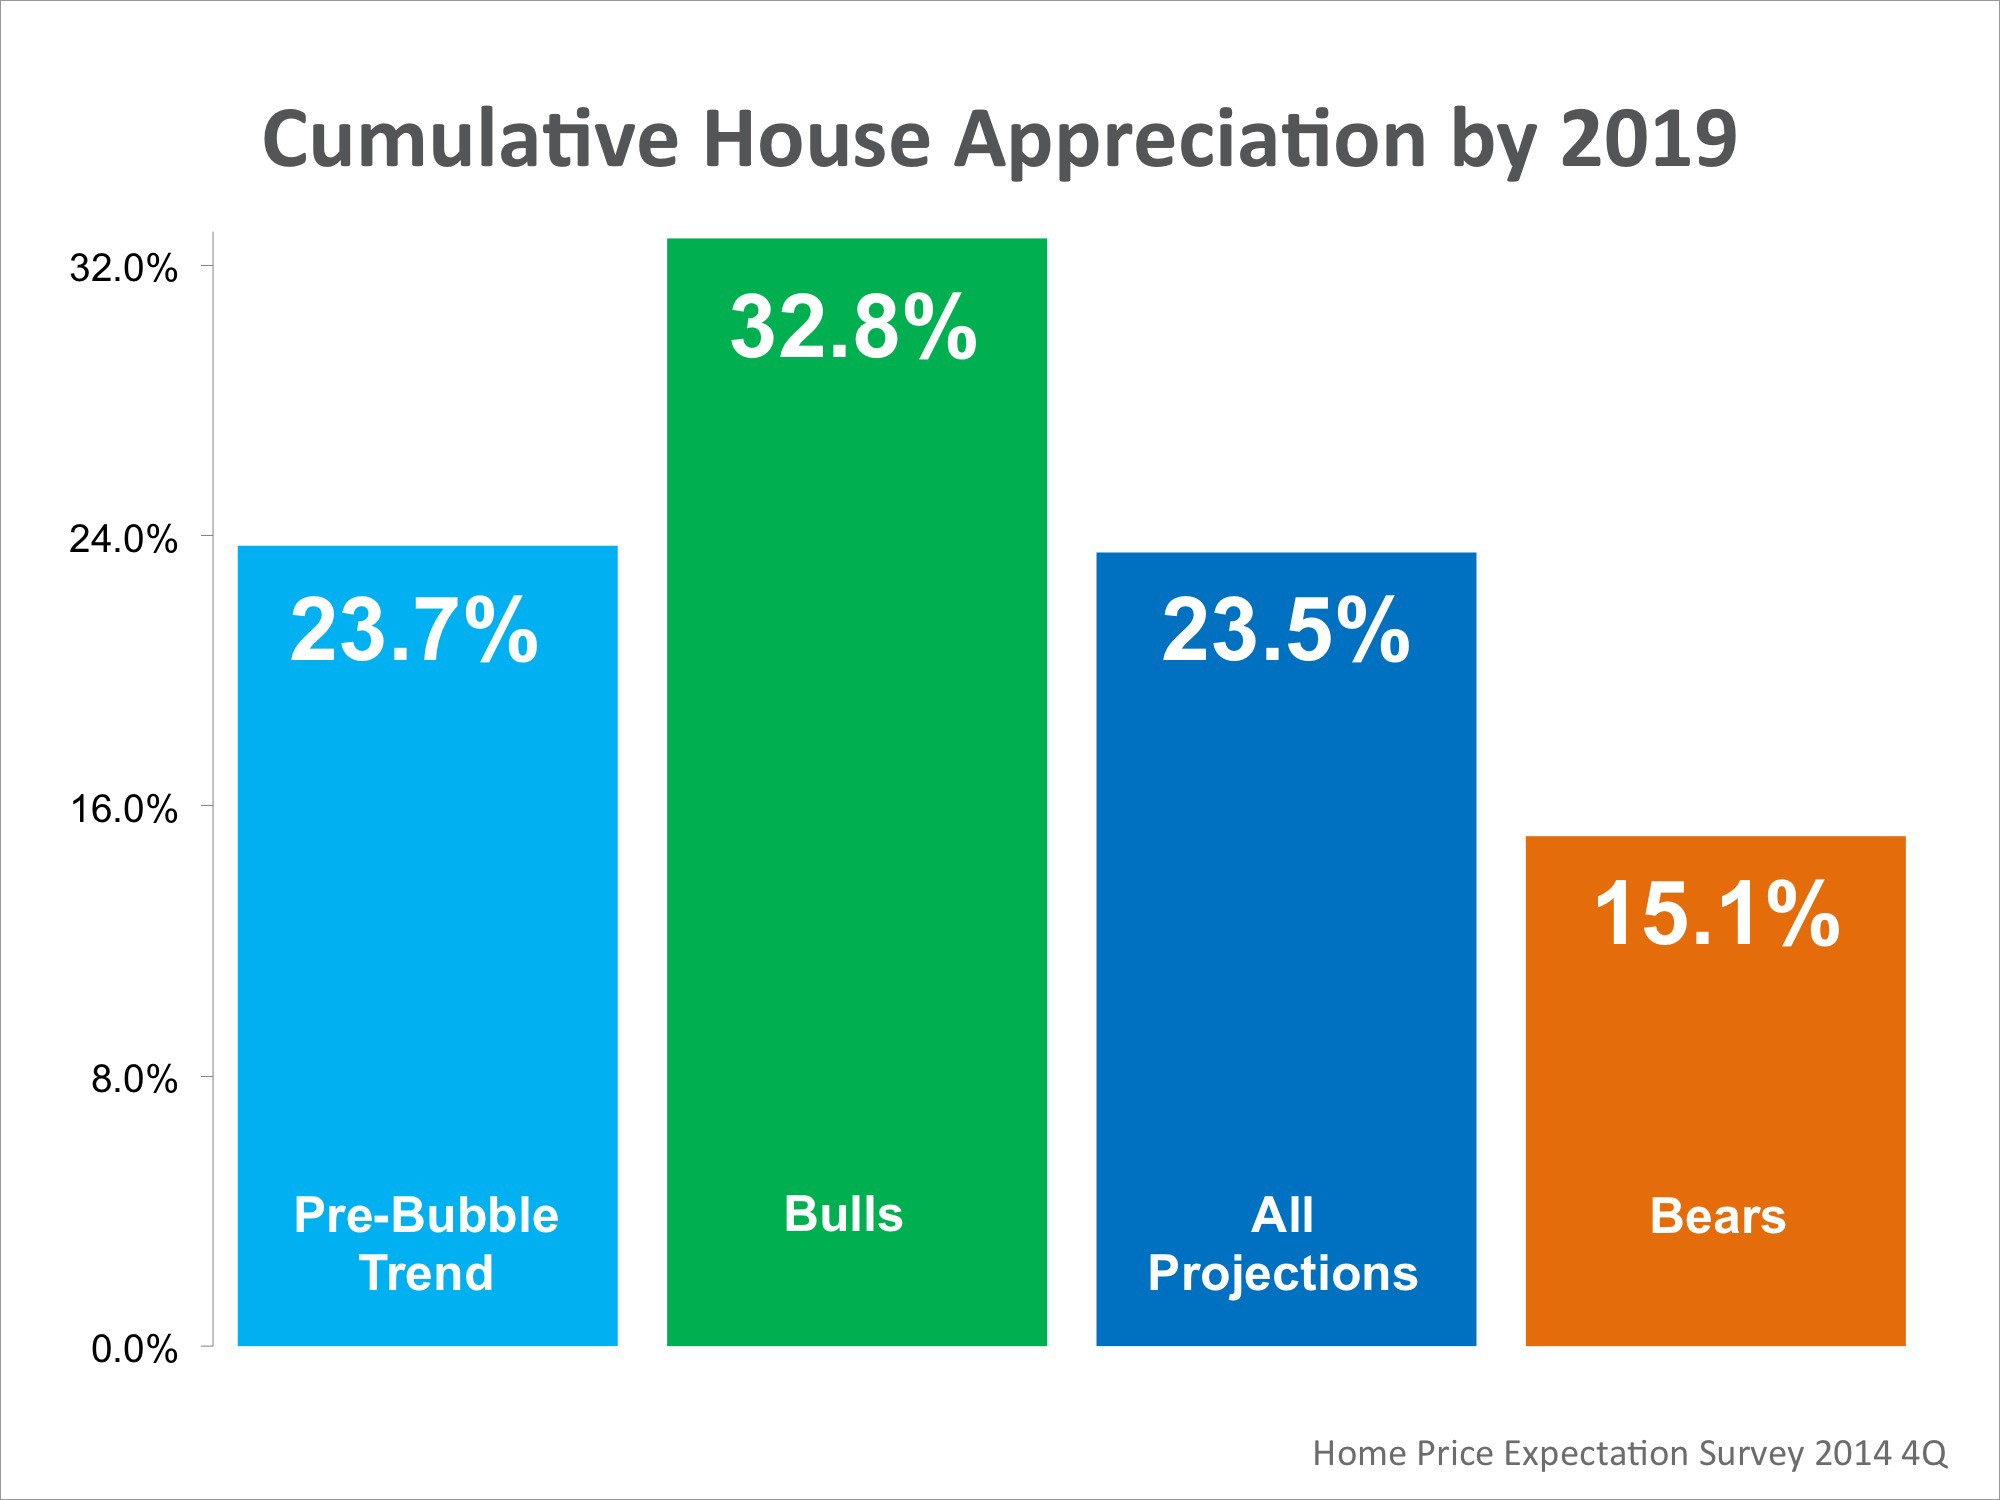 HPES Q4 Cumulative Appreciation 2019